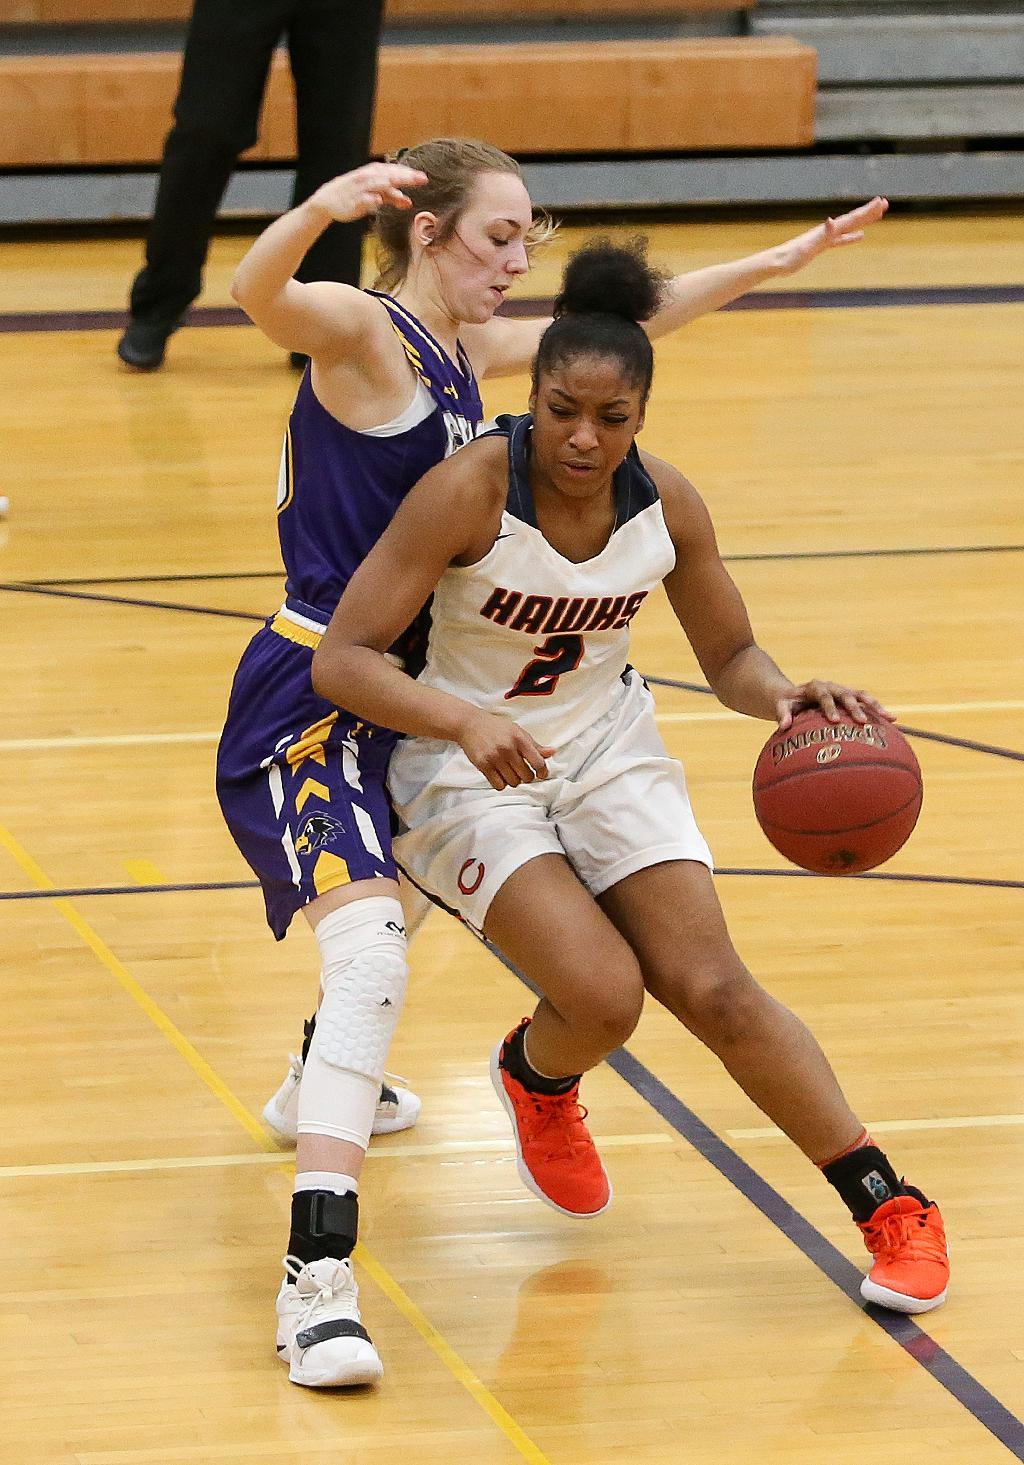 Aja Wheeler (2) led all players with 26 points on Tuesday night, as Robbinsdale Cooper handed Chaska its first league loss with a 75-70 win to avenge a loss earlier in the season. Photo by Cheryl Myers, SportsEngine